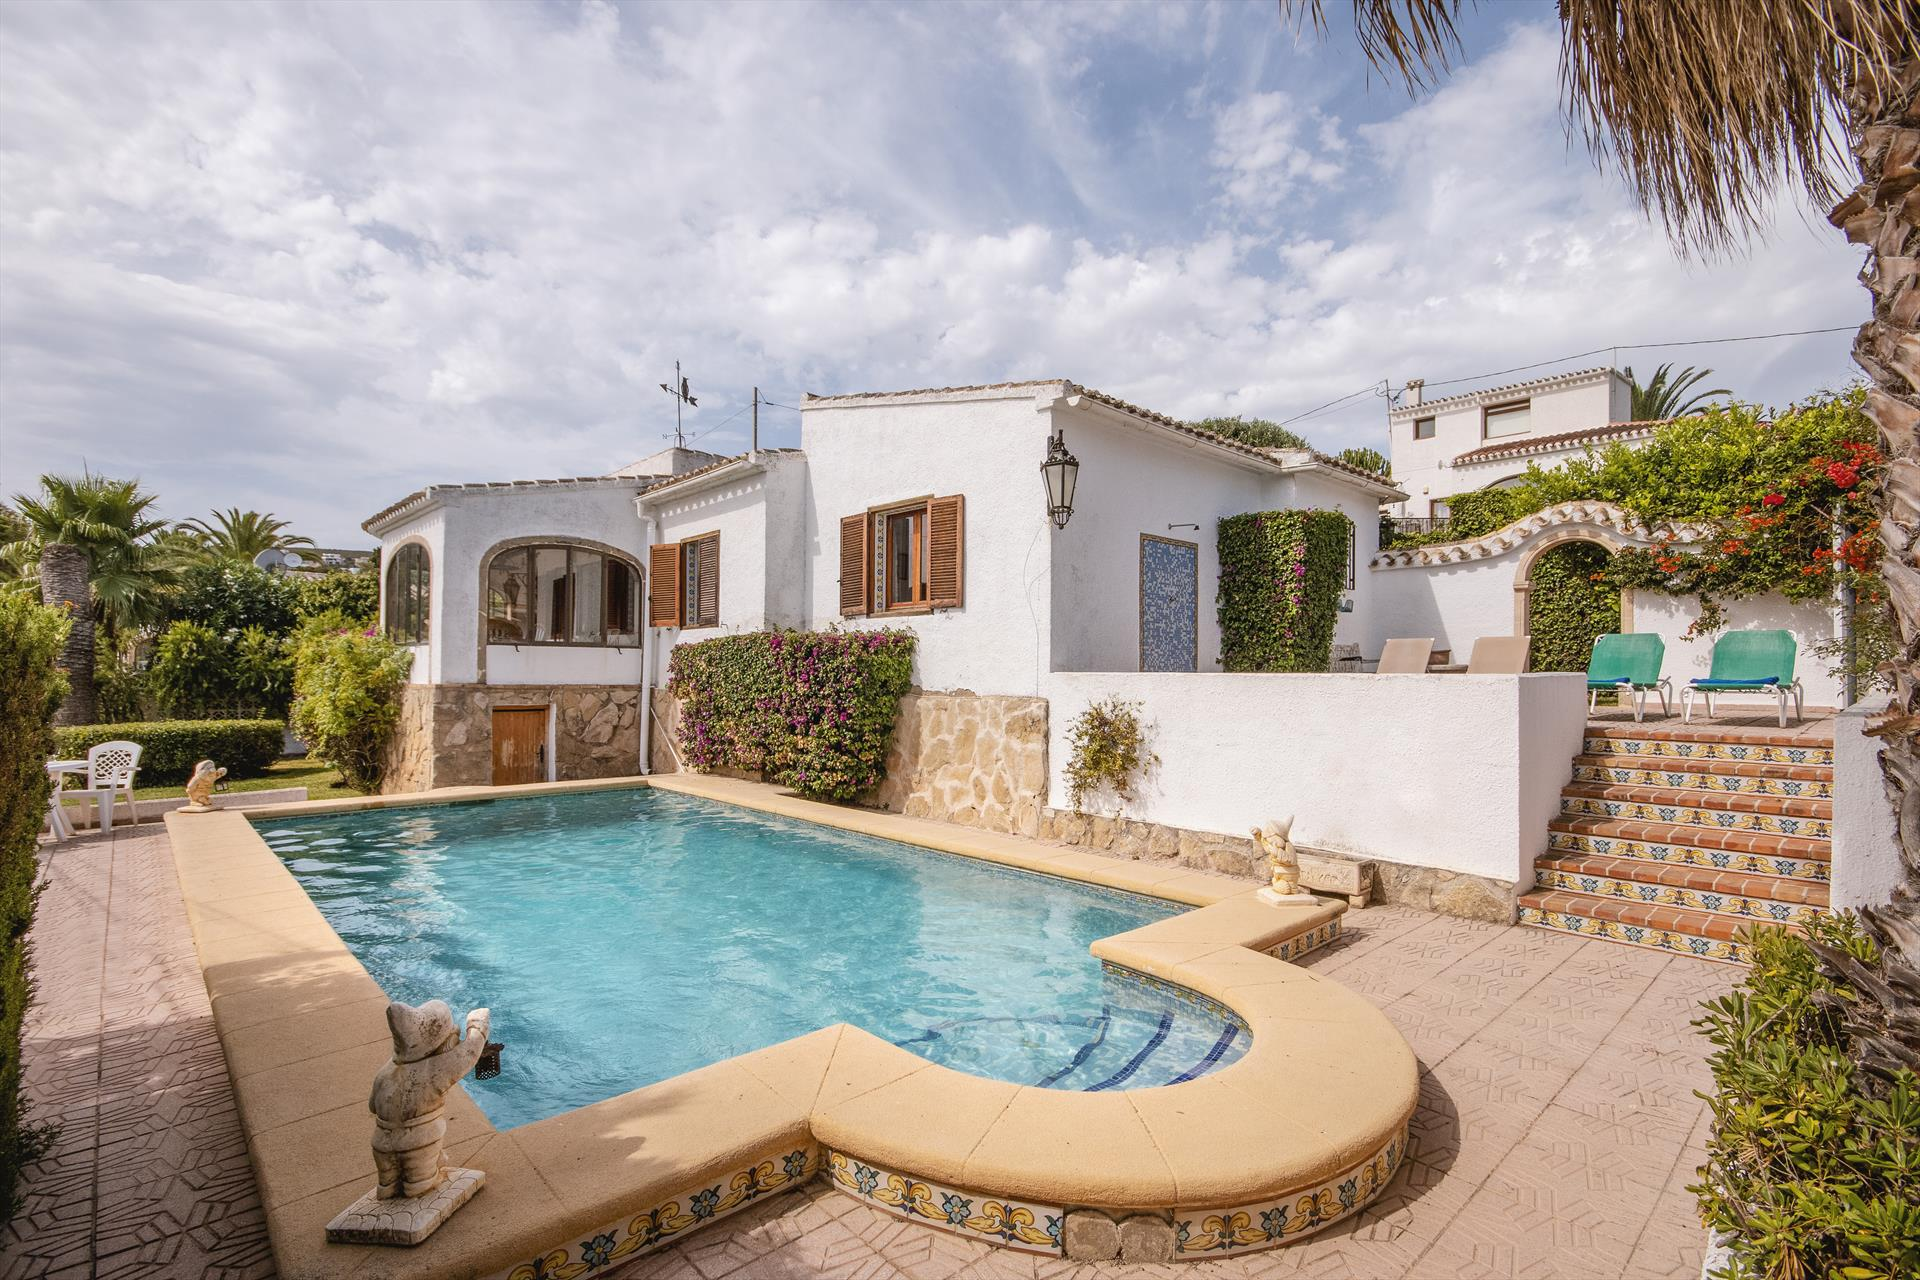 Rustica,Rustic and classic villa in Javea, on the Costa Blanca, Spain  with private pool for 6 persons...